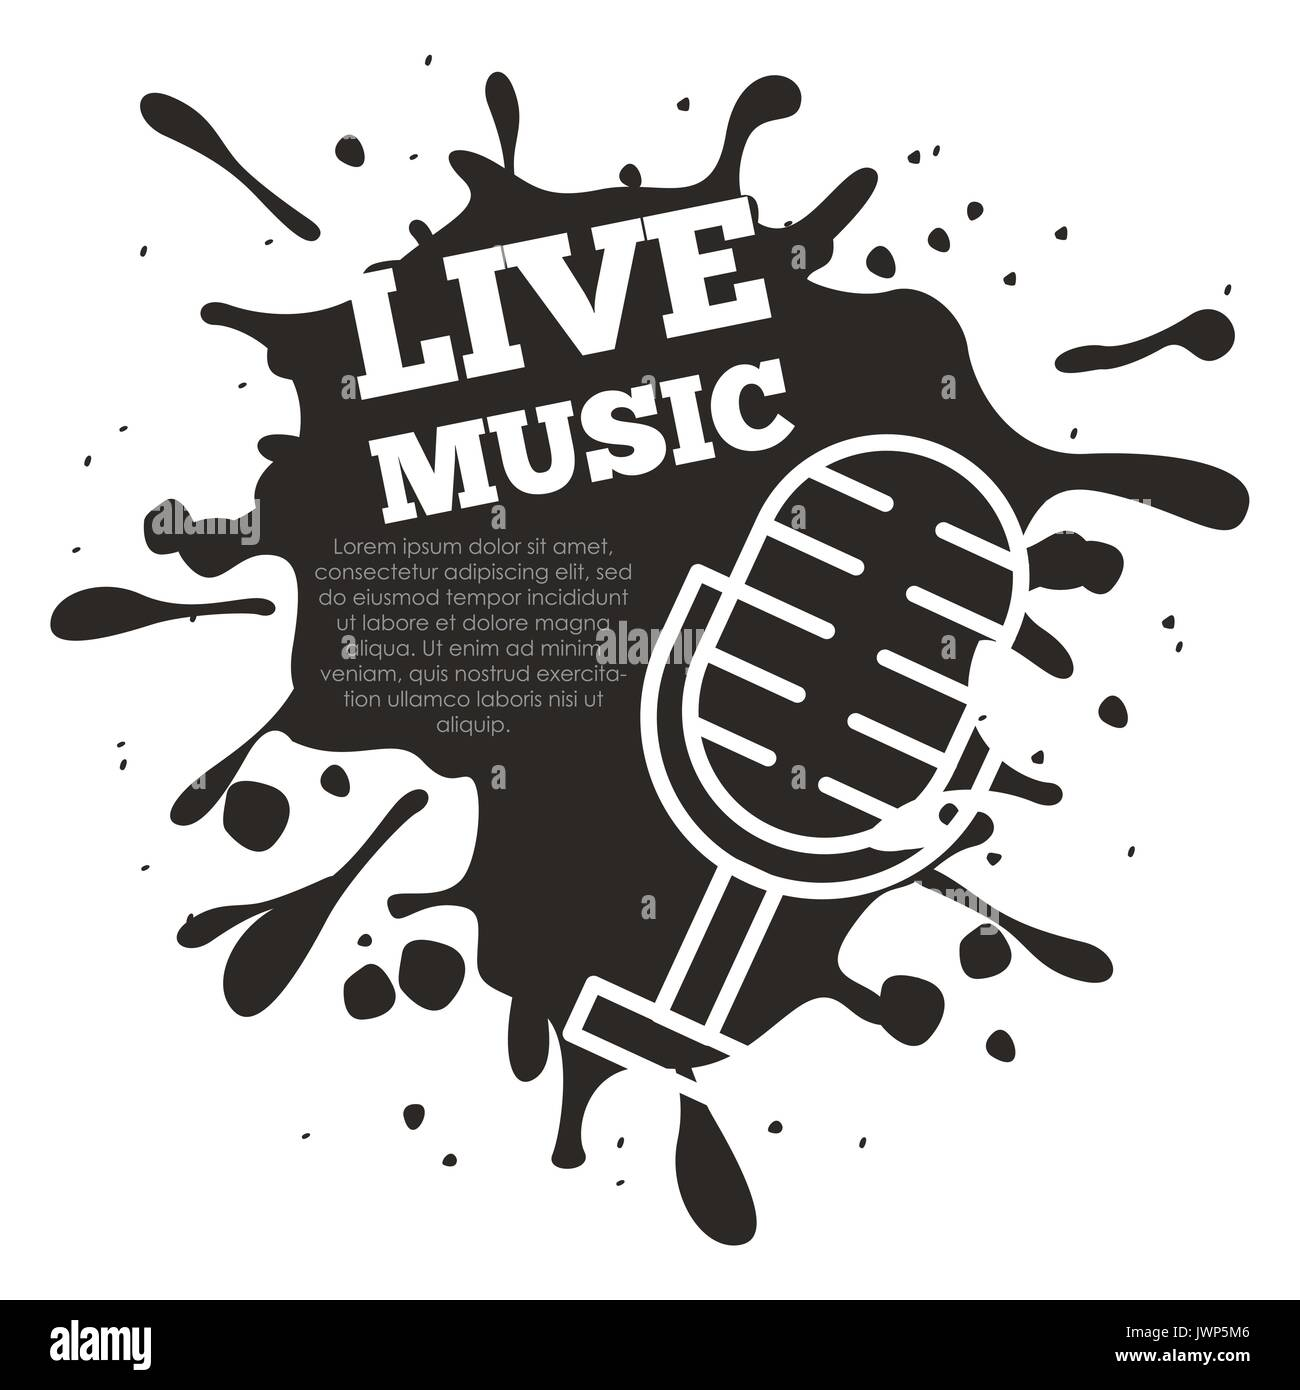 live music concert - Stock Image